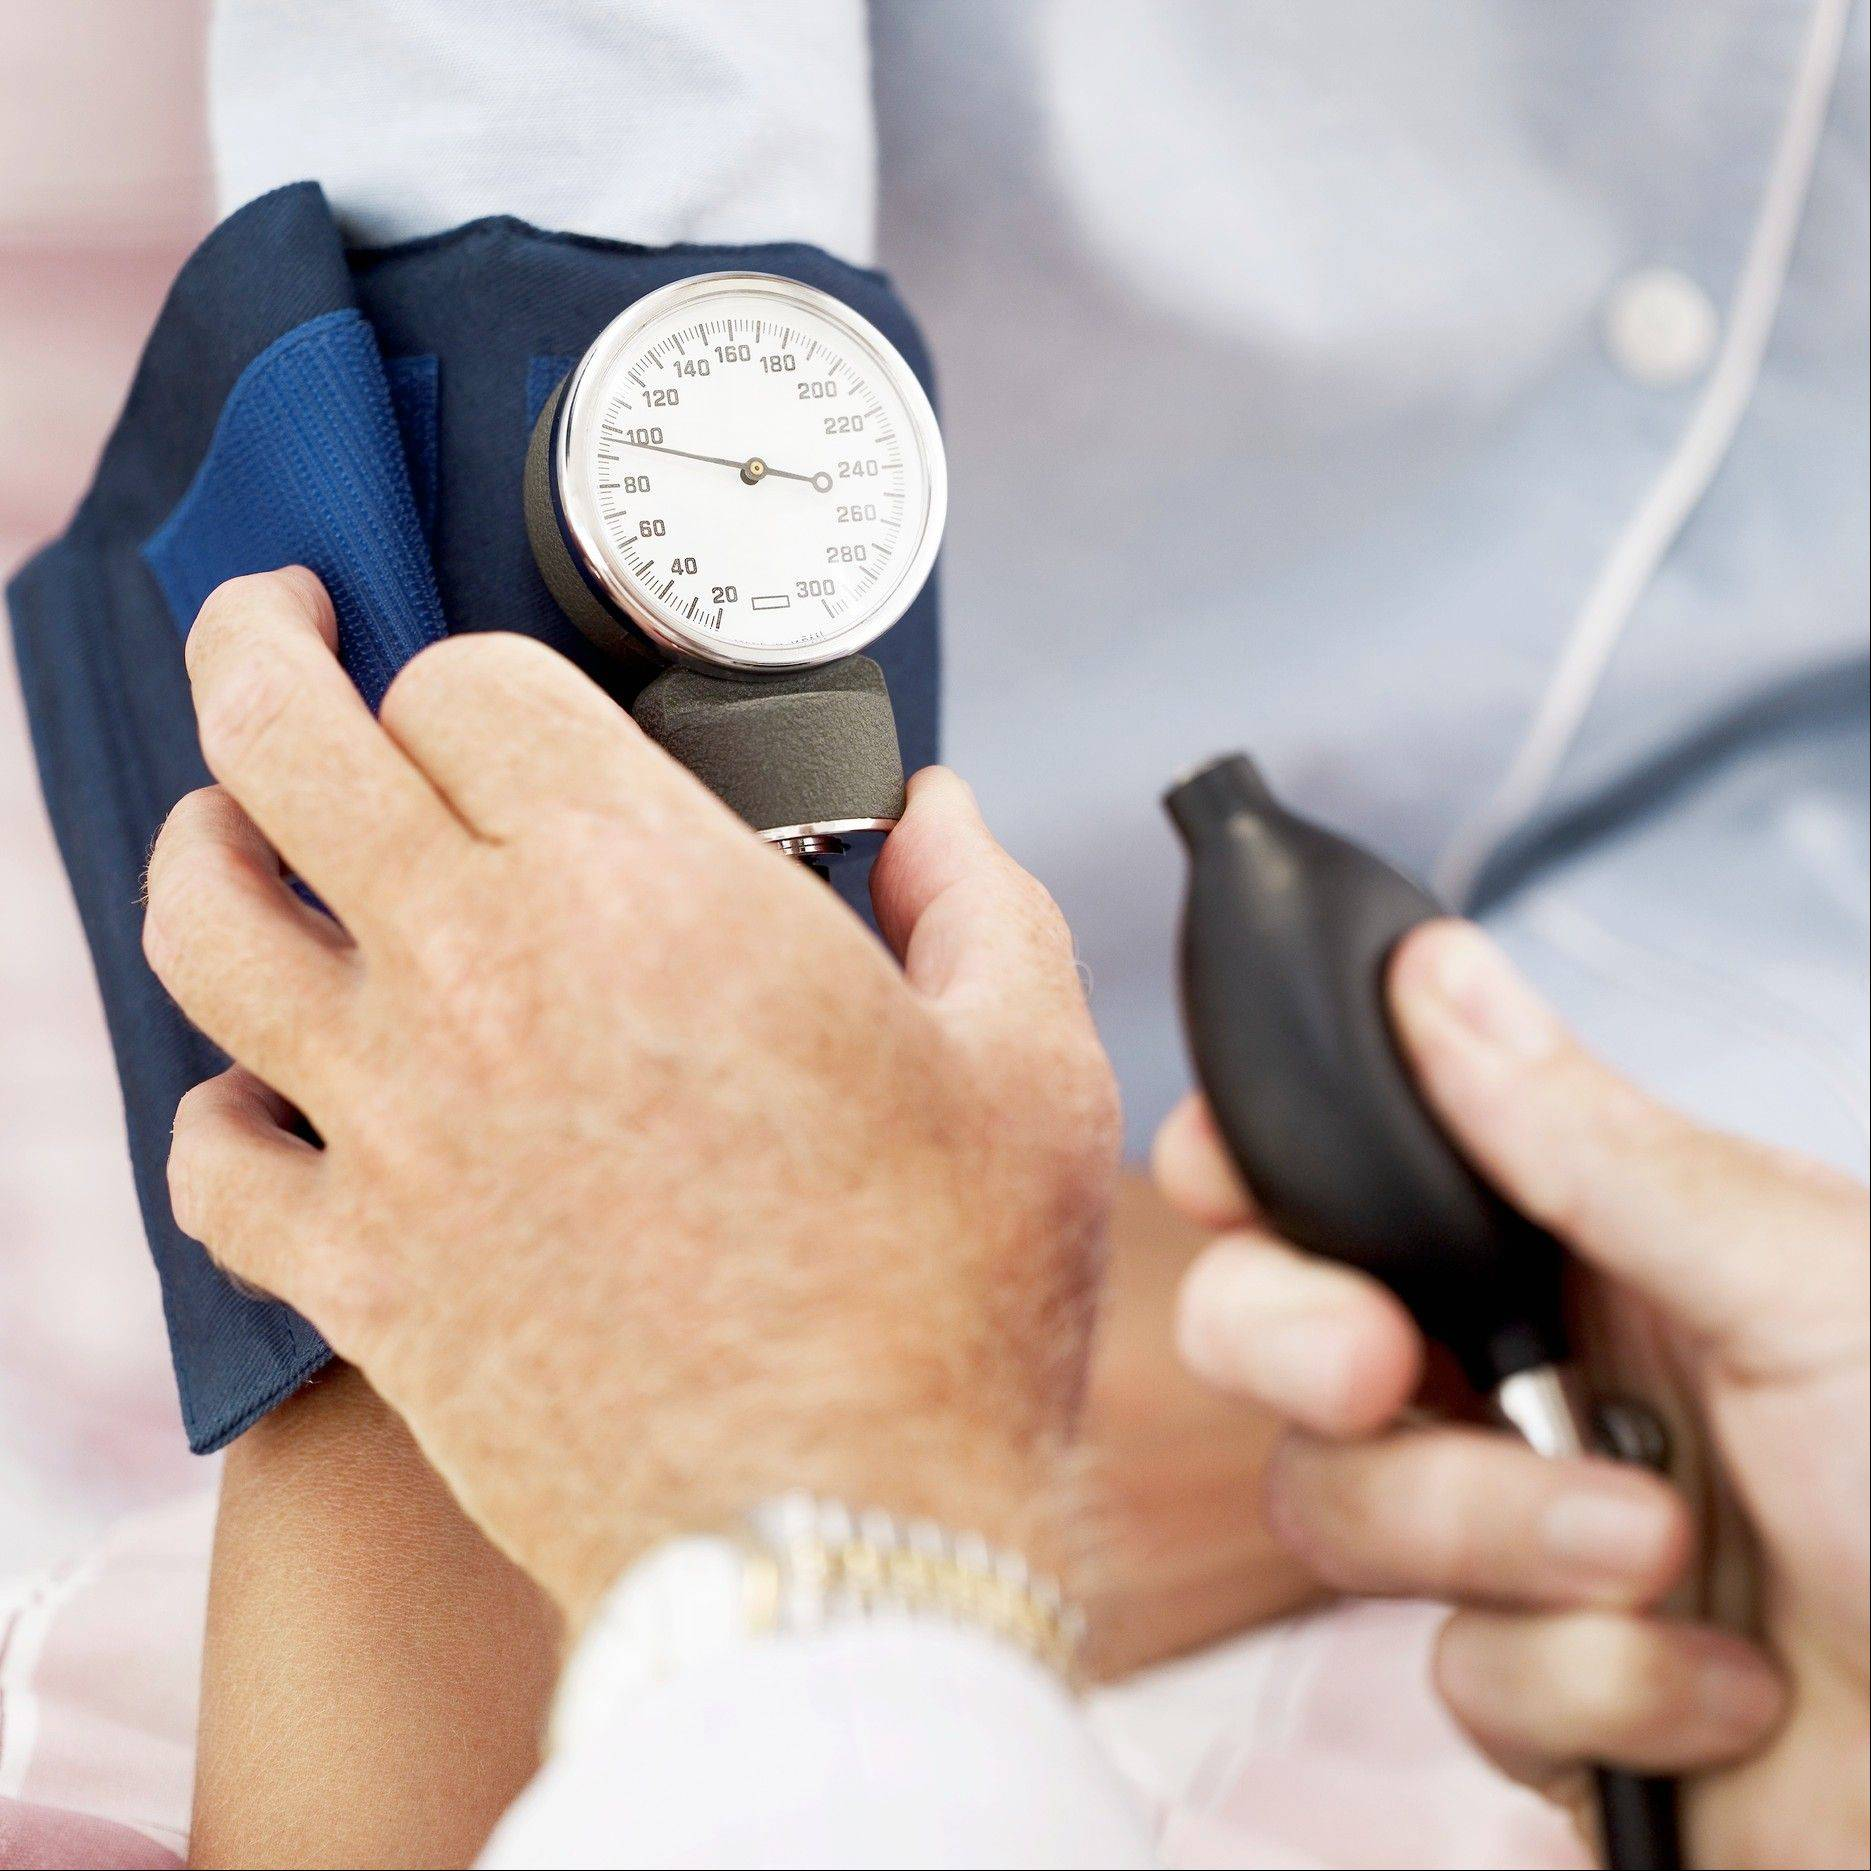 Many older adults with high blood pressure can be treated less aggressively, which could mean taking fewer pills to get it under control, according to new treatment guidelines from an expert panel.